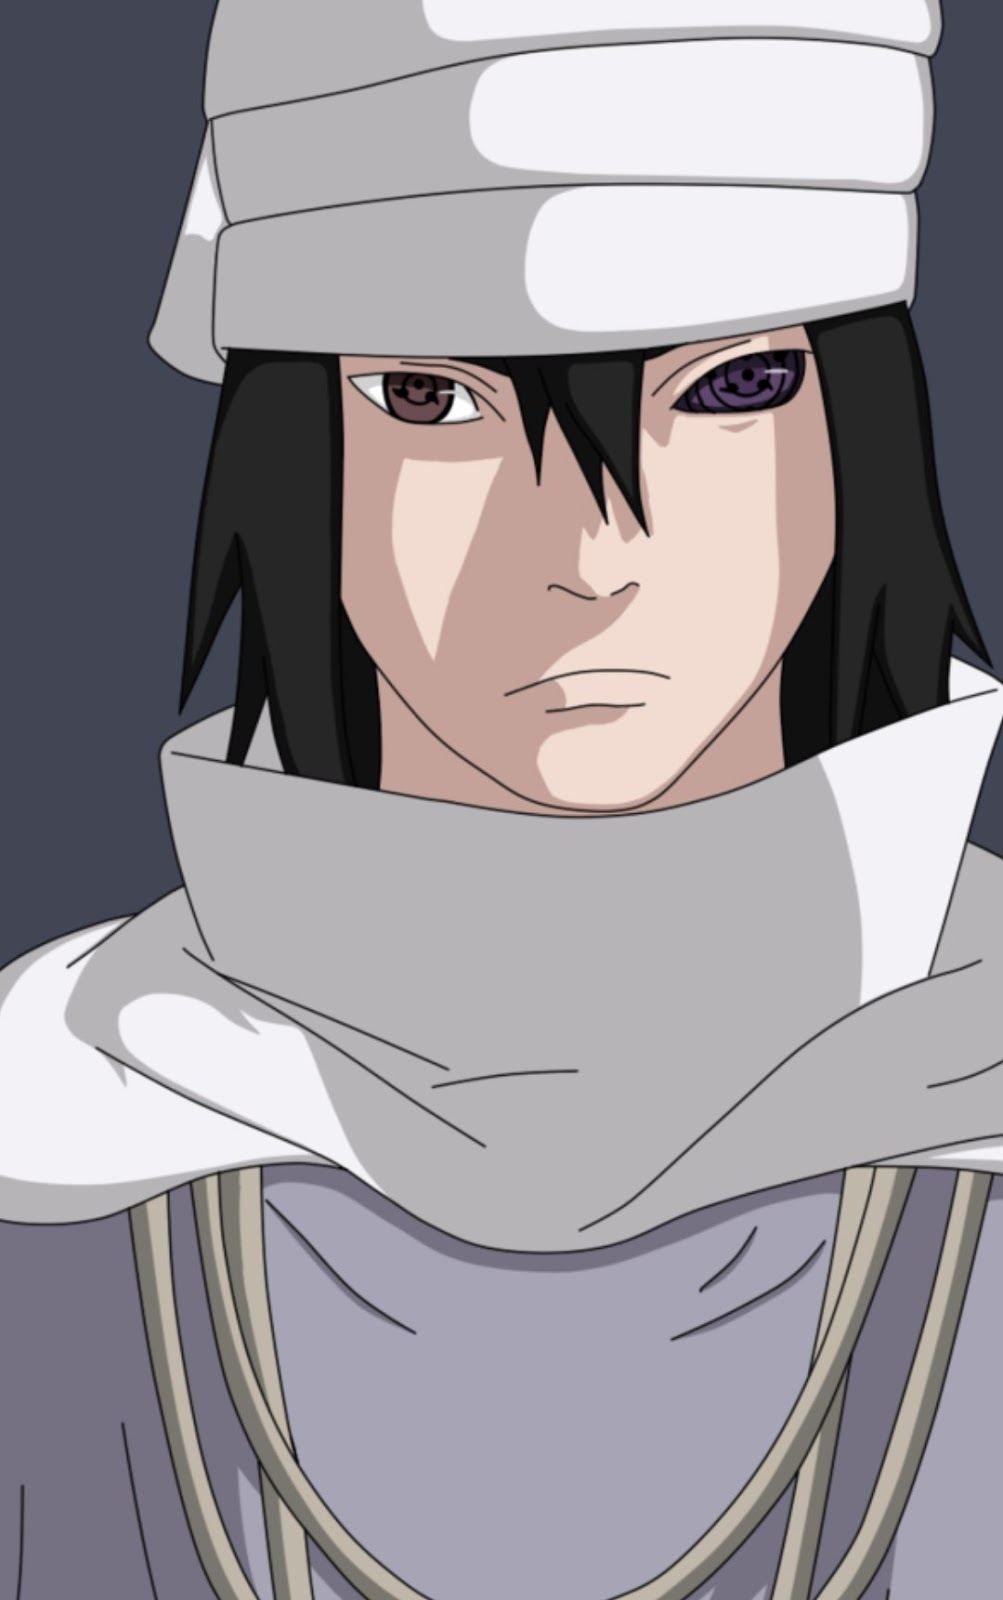 6. Download wallpaper uchiha sasuke vektor untuk android dan whatsApp chat